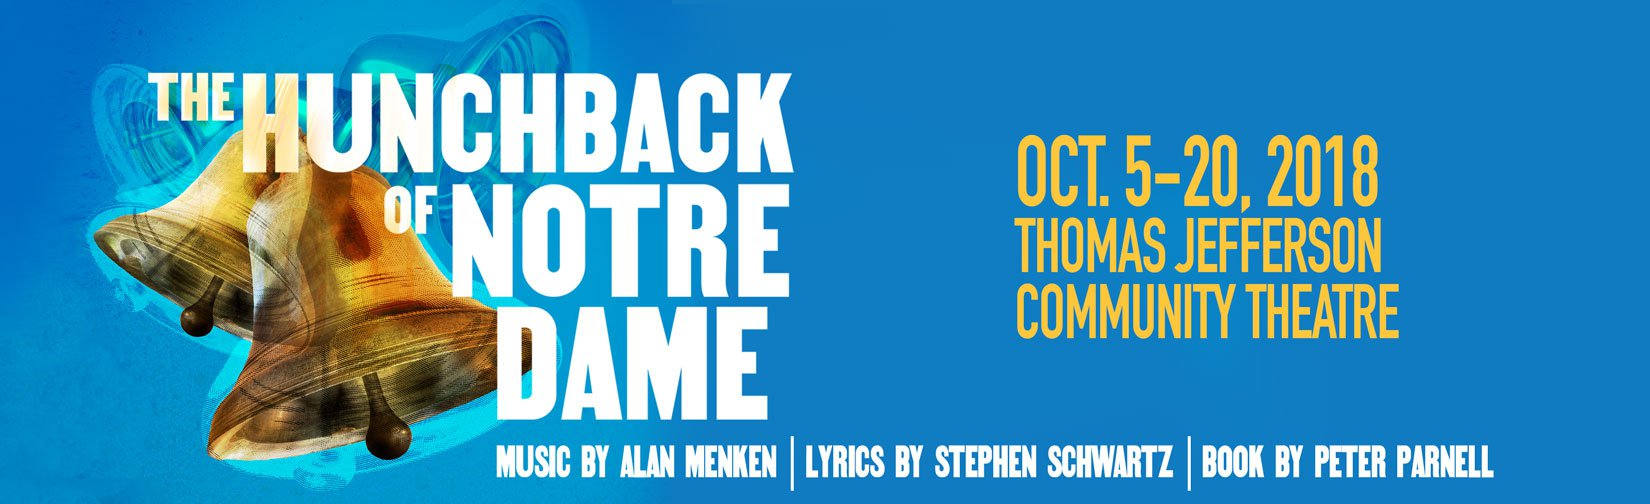 The Hunchback of Notre Dame -- Oct 5-20, 2018 -- Thomas Jefferson Community Theatre -- Music by Alan Menken -- Lyrics by Stephen Schwartz -- Book by Peter Parnell